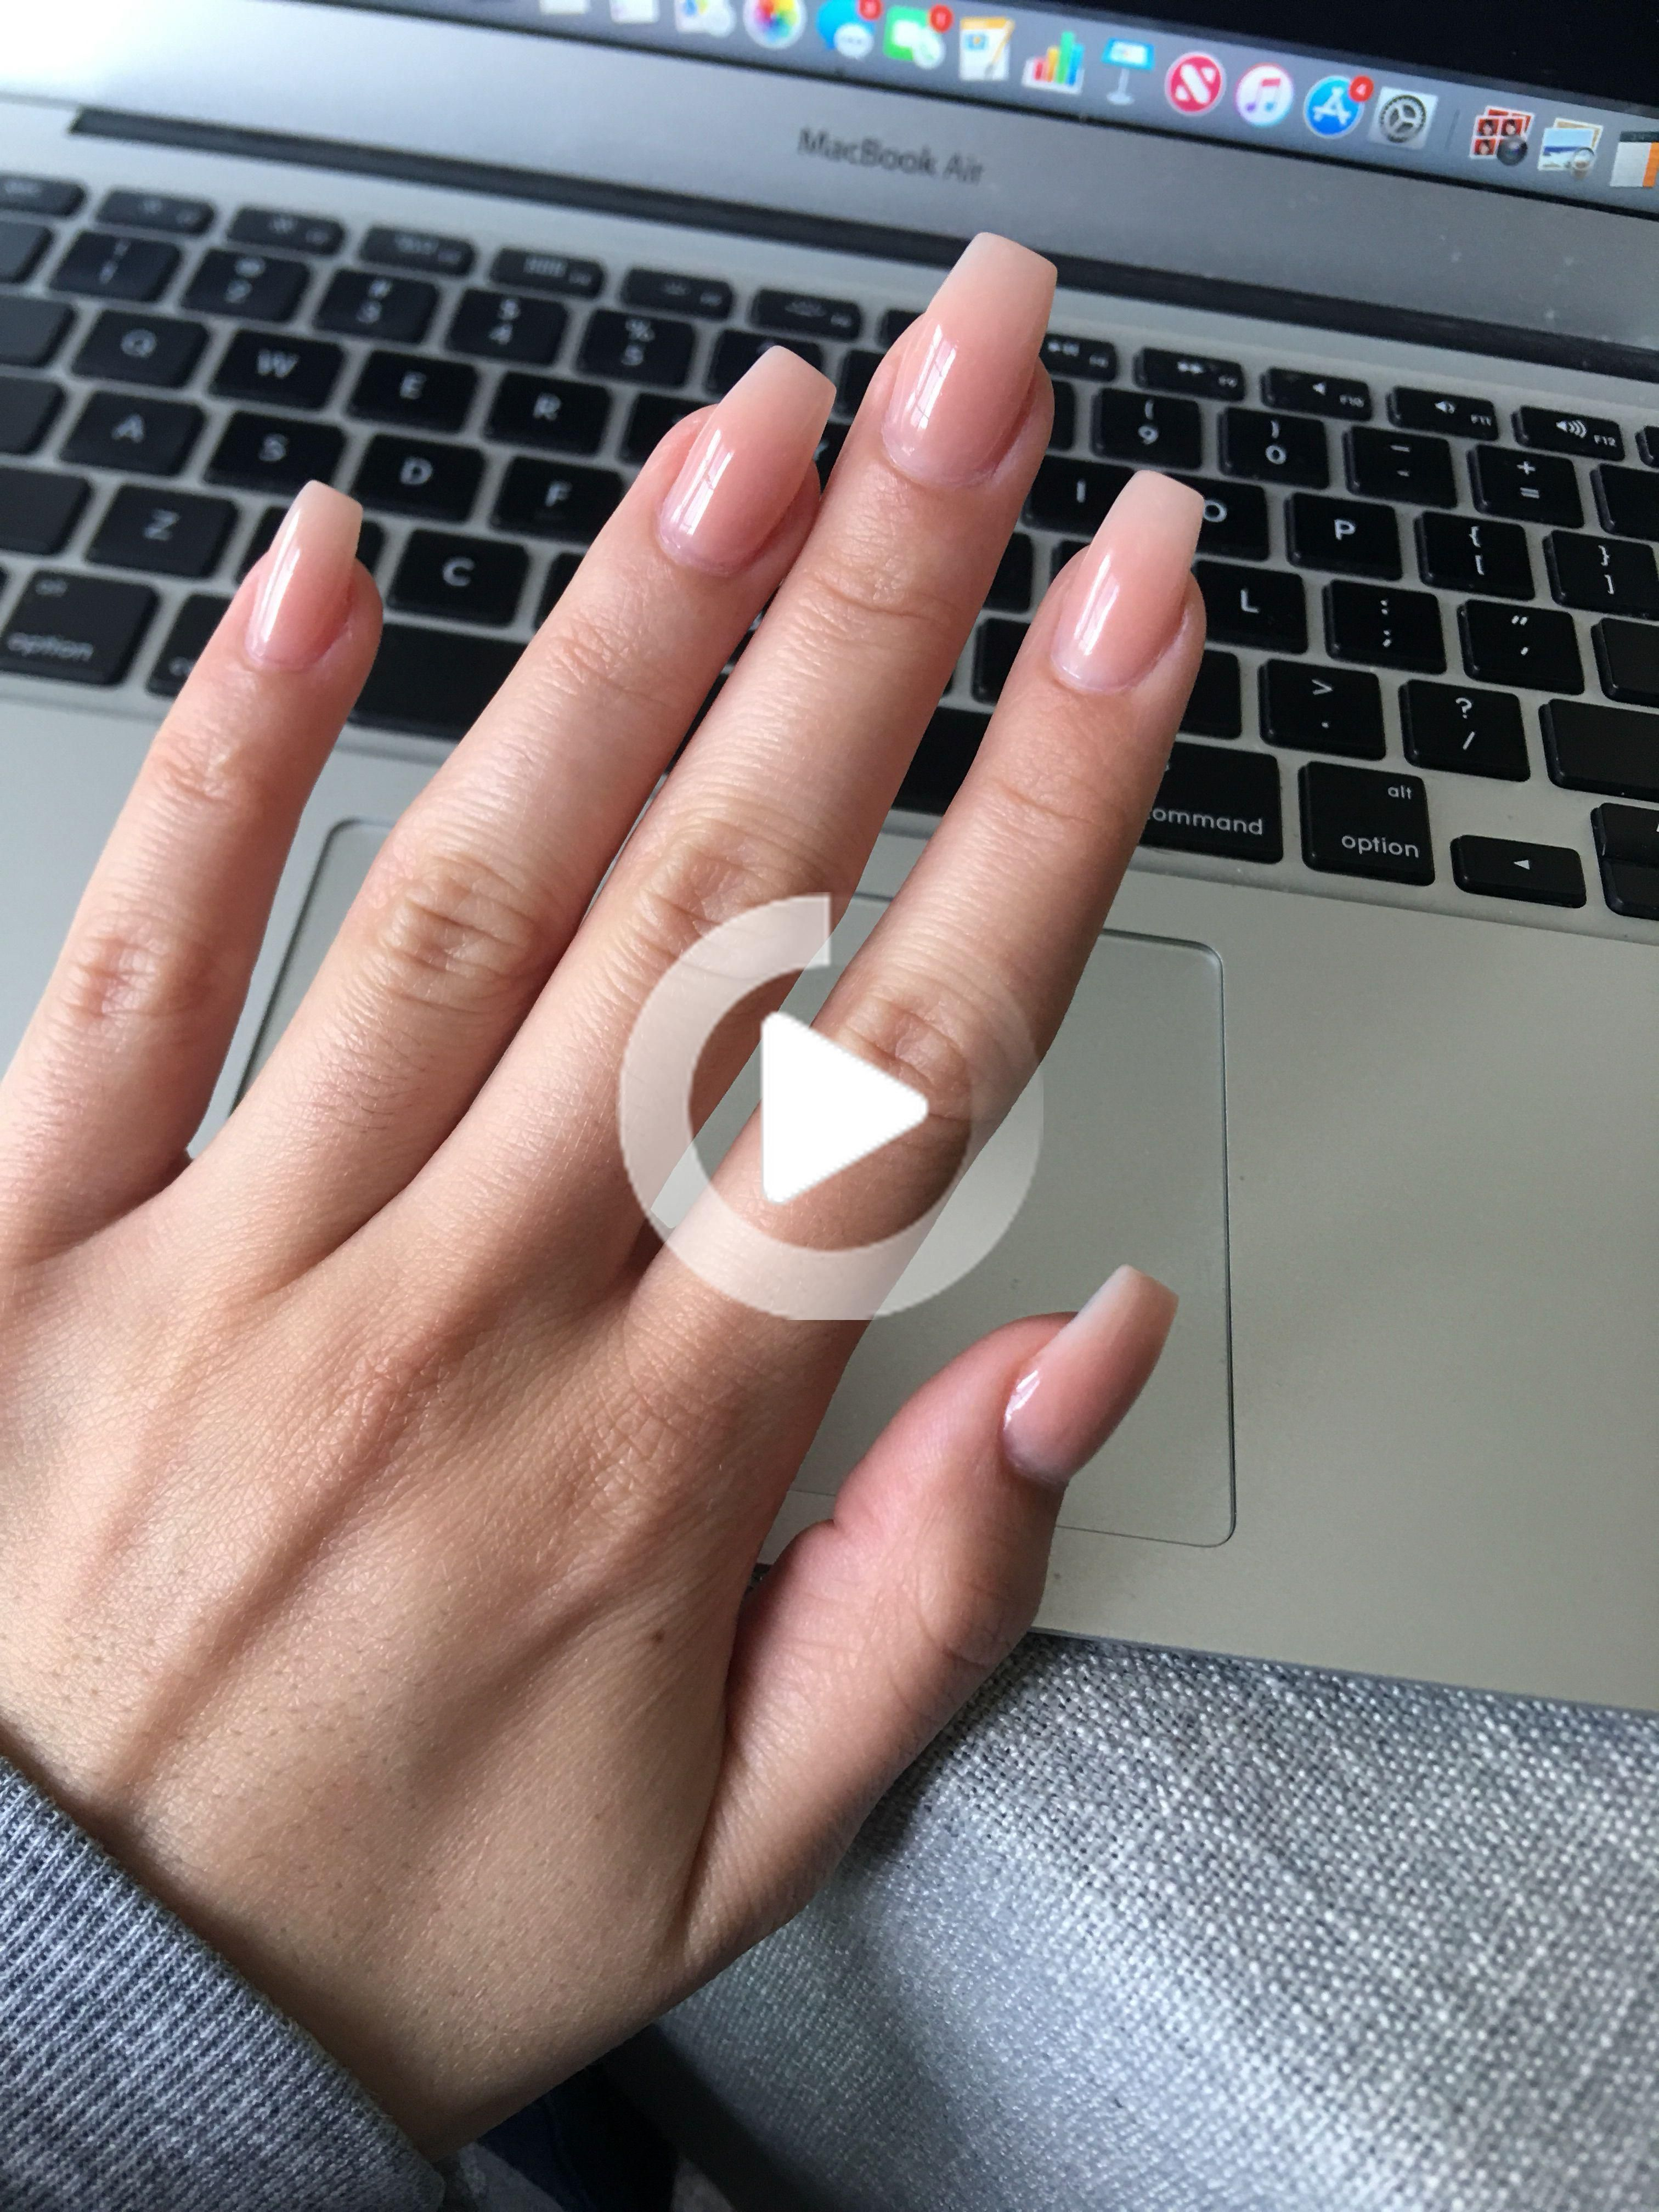 Natural Acrylic Extension Acrylic Extension On Natural Nails Soft Pink Powder Clear Gel Top Coat In 2020 Natural Acrylic Nails Natural Nails Long Gel Nails